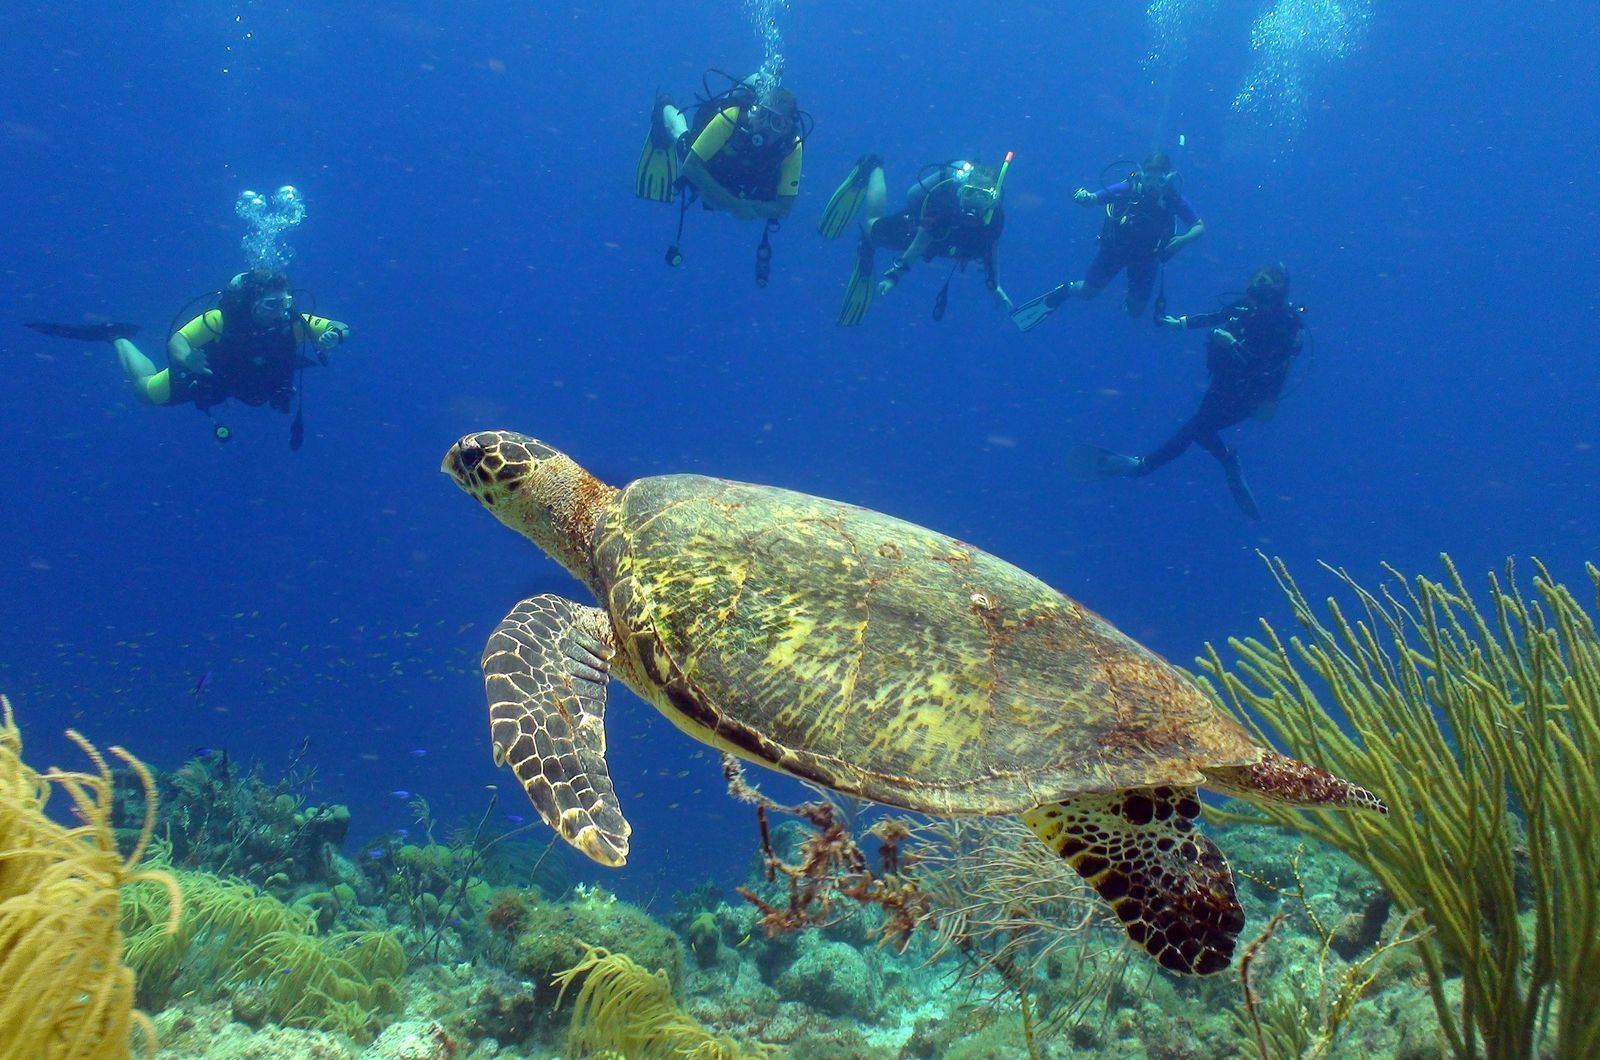 Dive into Winter - Hotel Room Deluxe - 5 days 2 tank boat & unlimited shore diving